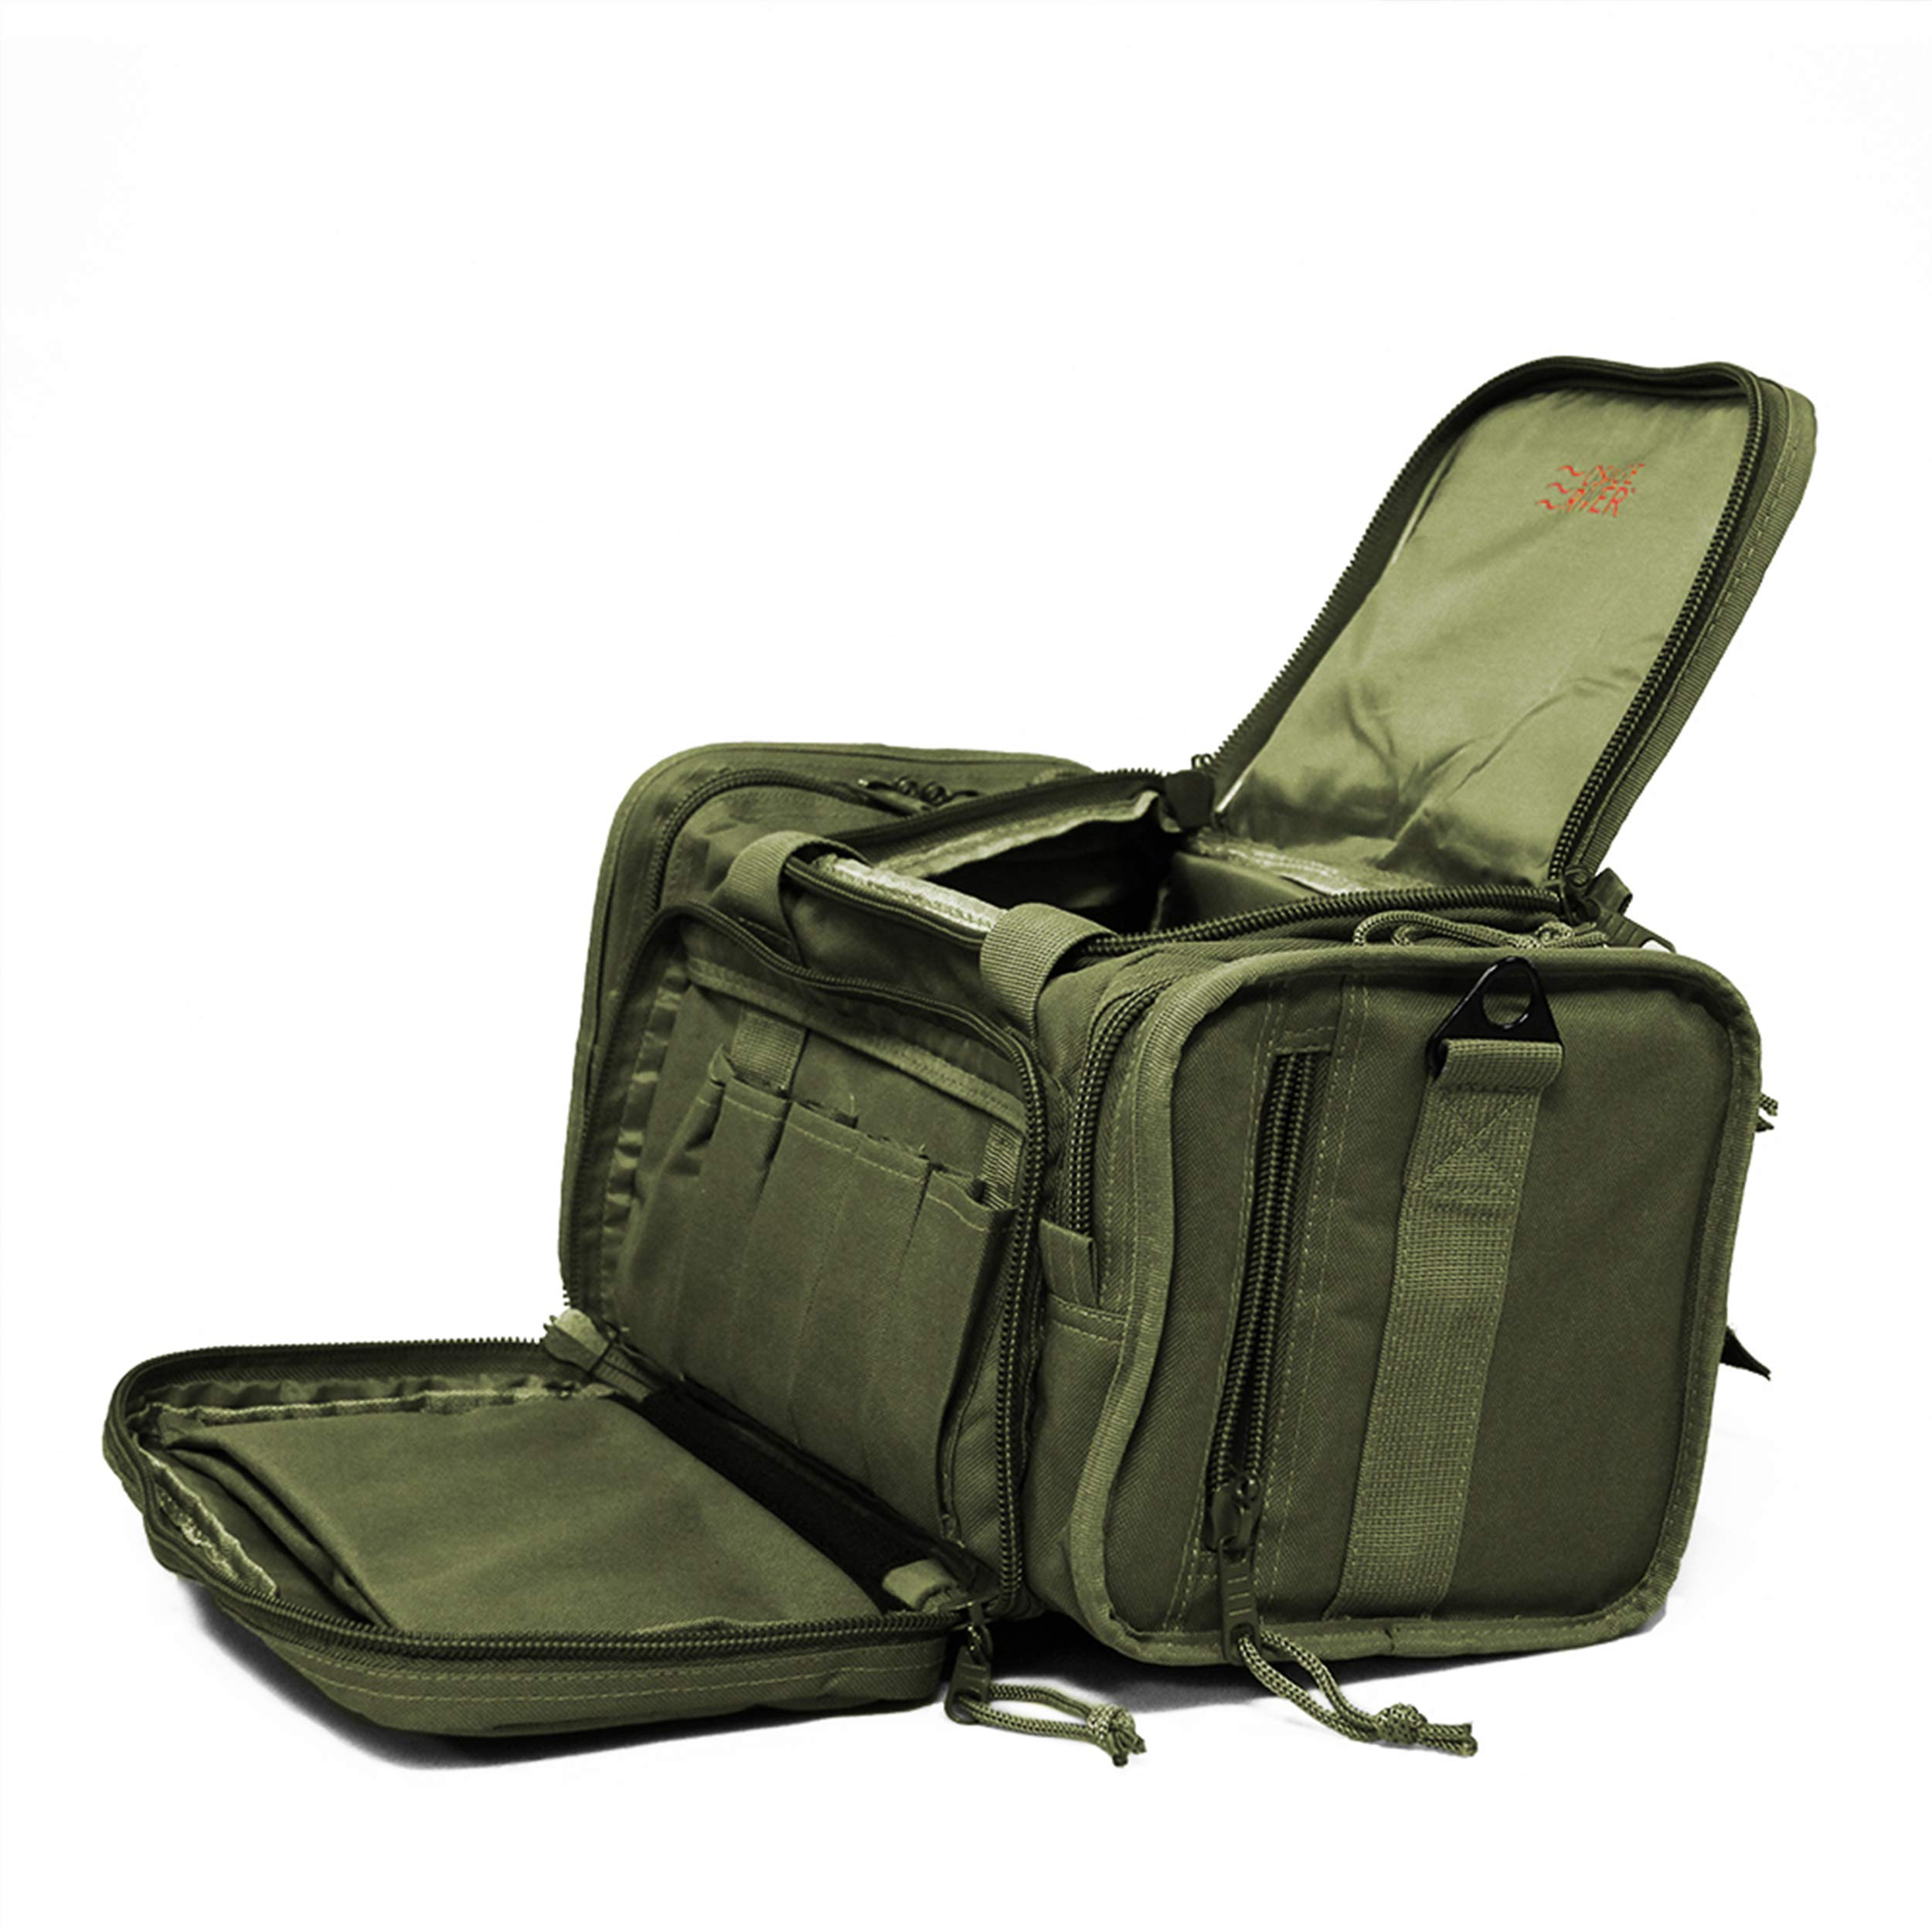 Osage River Tactical Shooting Gun Range Bag, OD Green , Light Duty (13.5 x 10.5 x 7.5) Inches